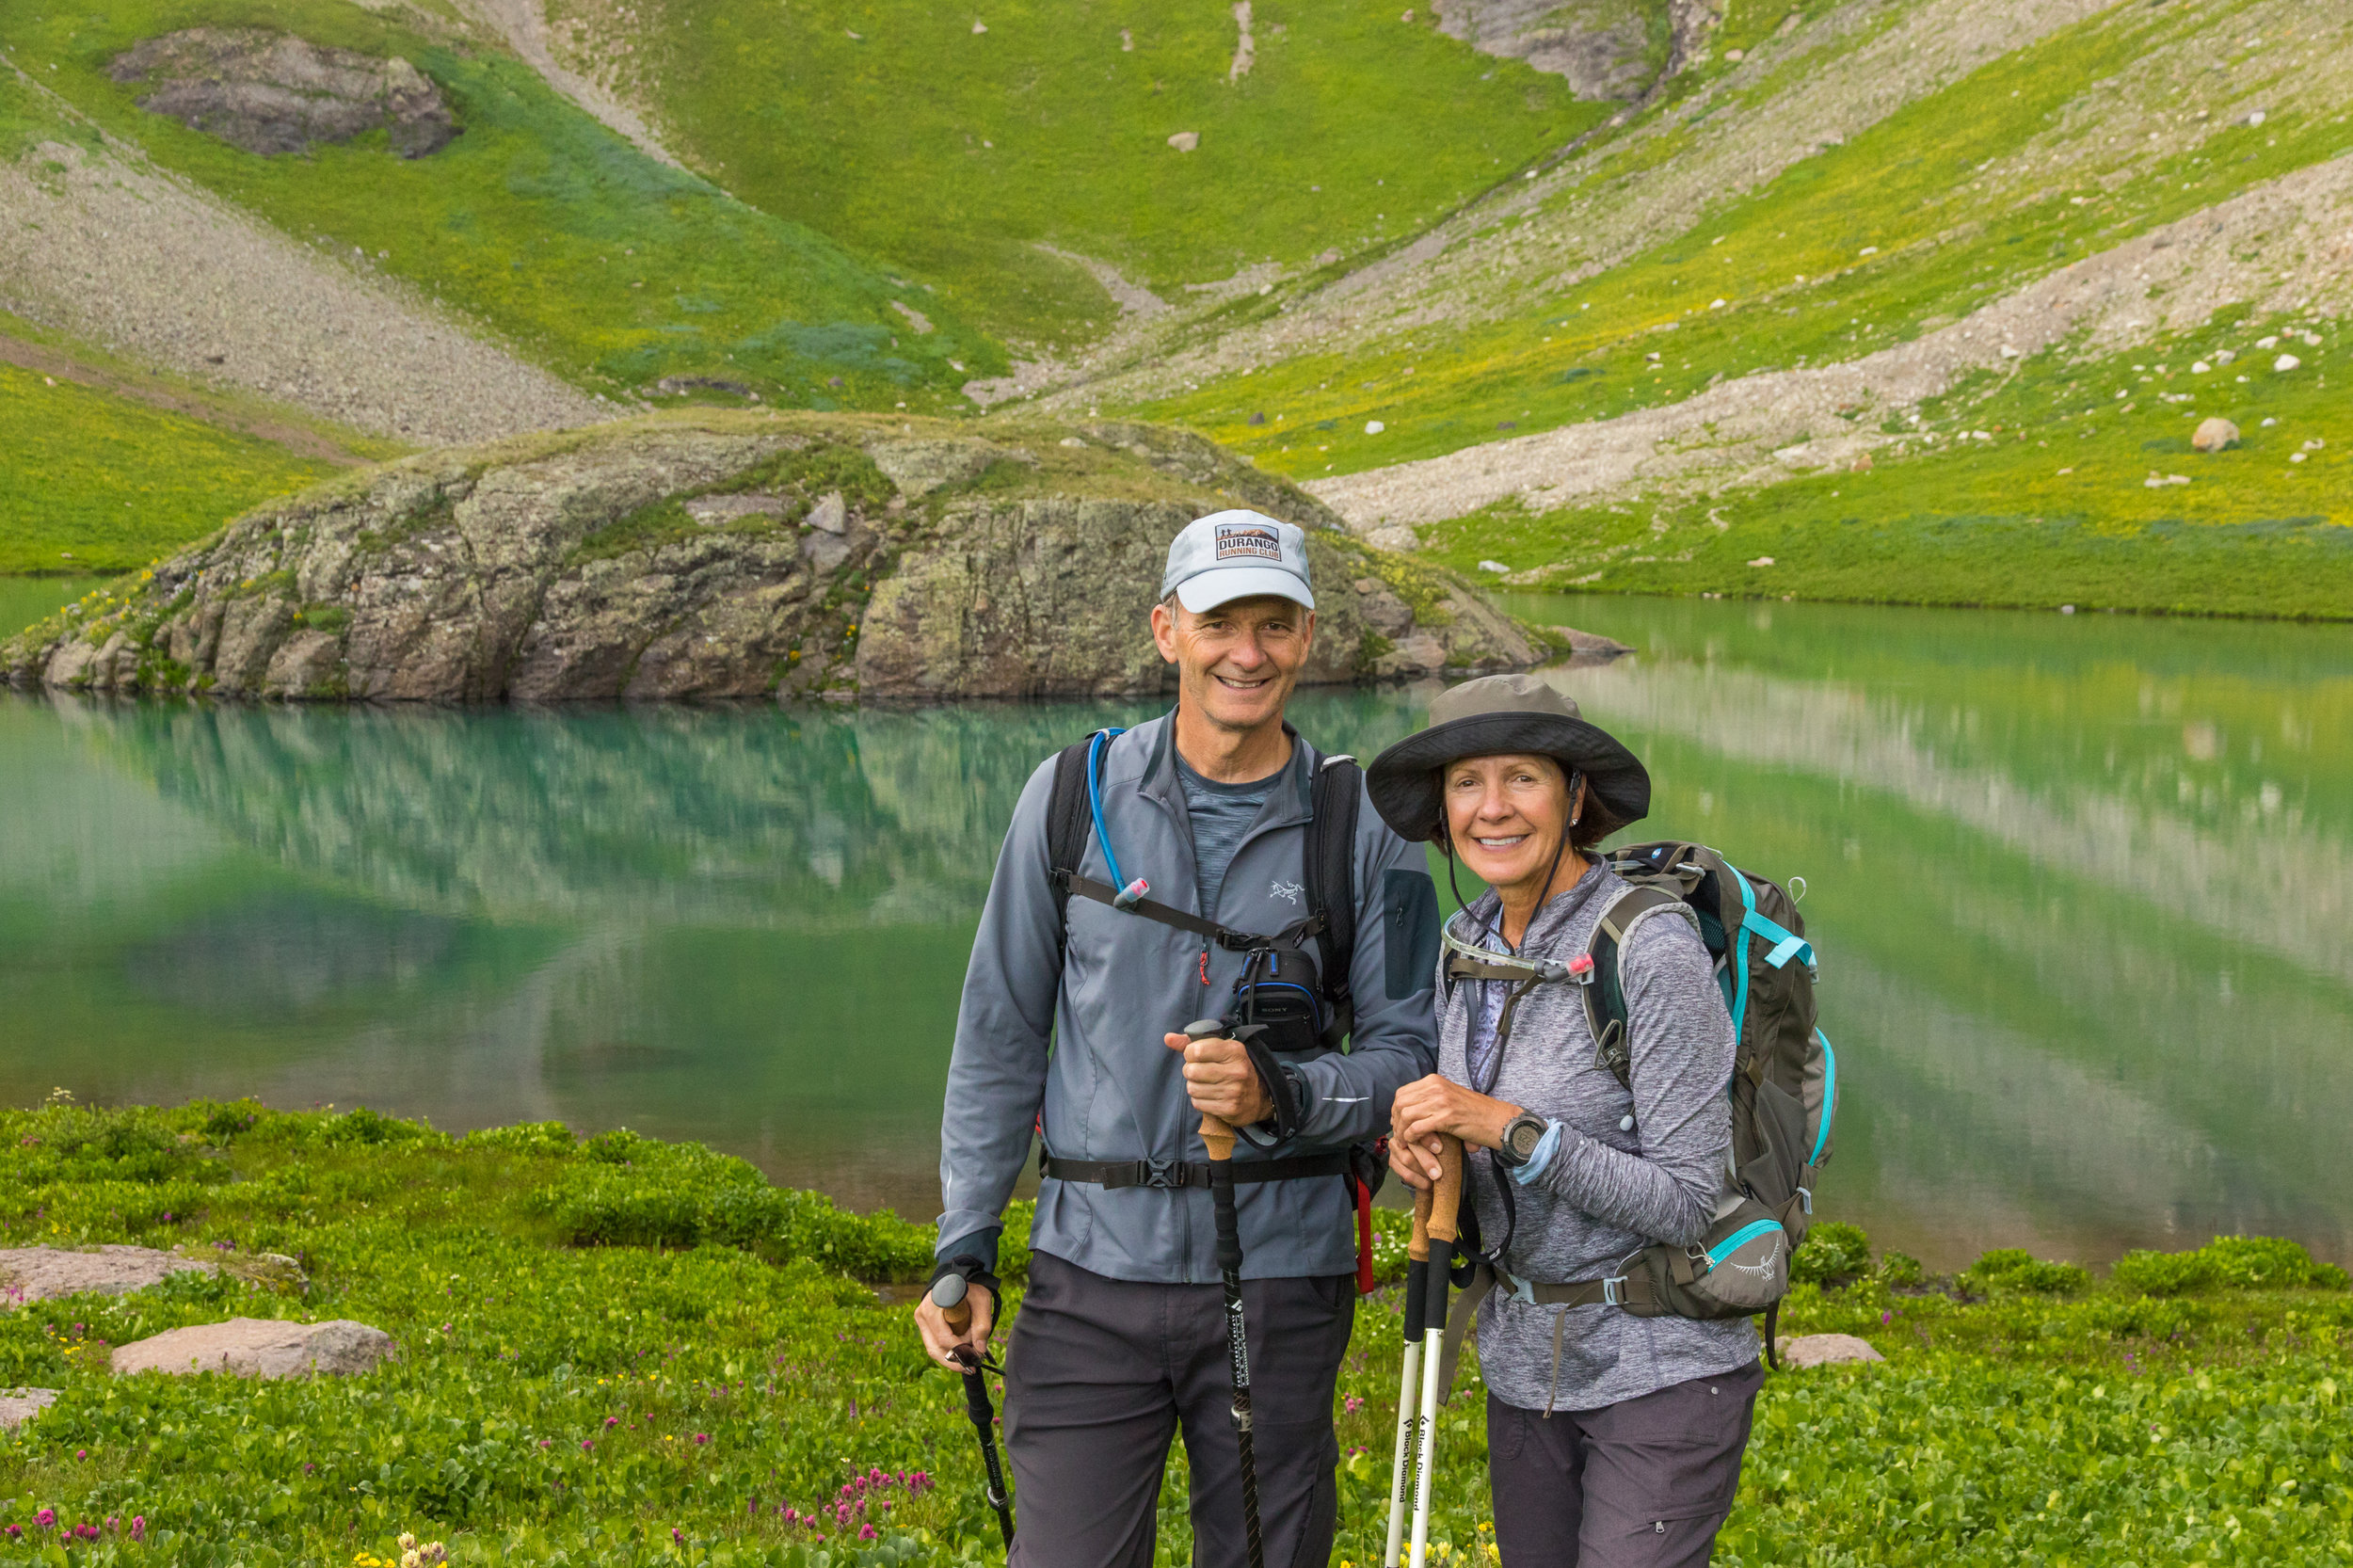 Tim & Angela Bouchard, Island Lake Hike, Image # 9221